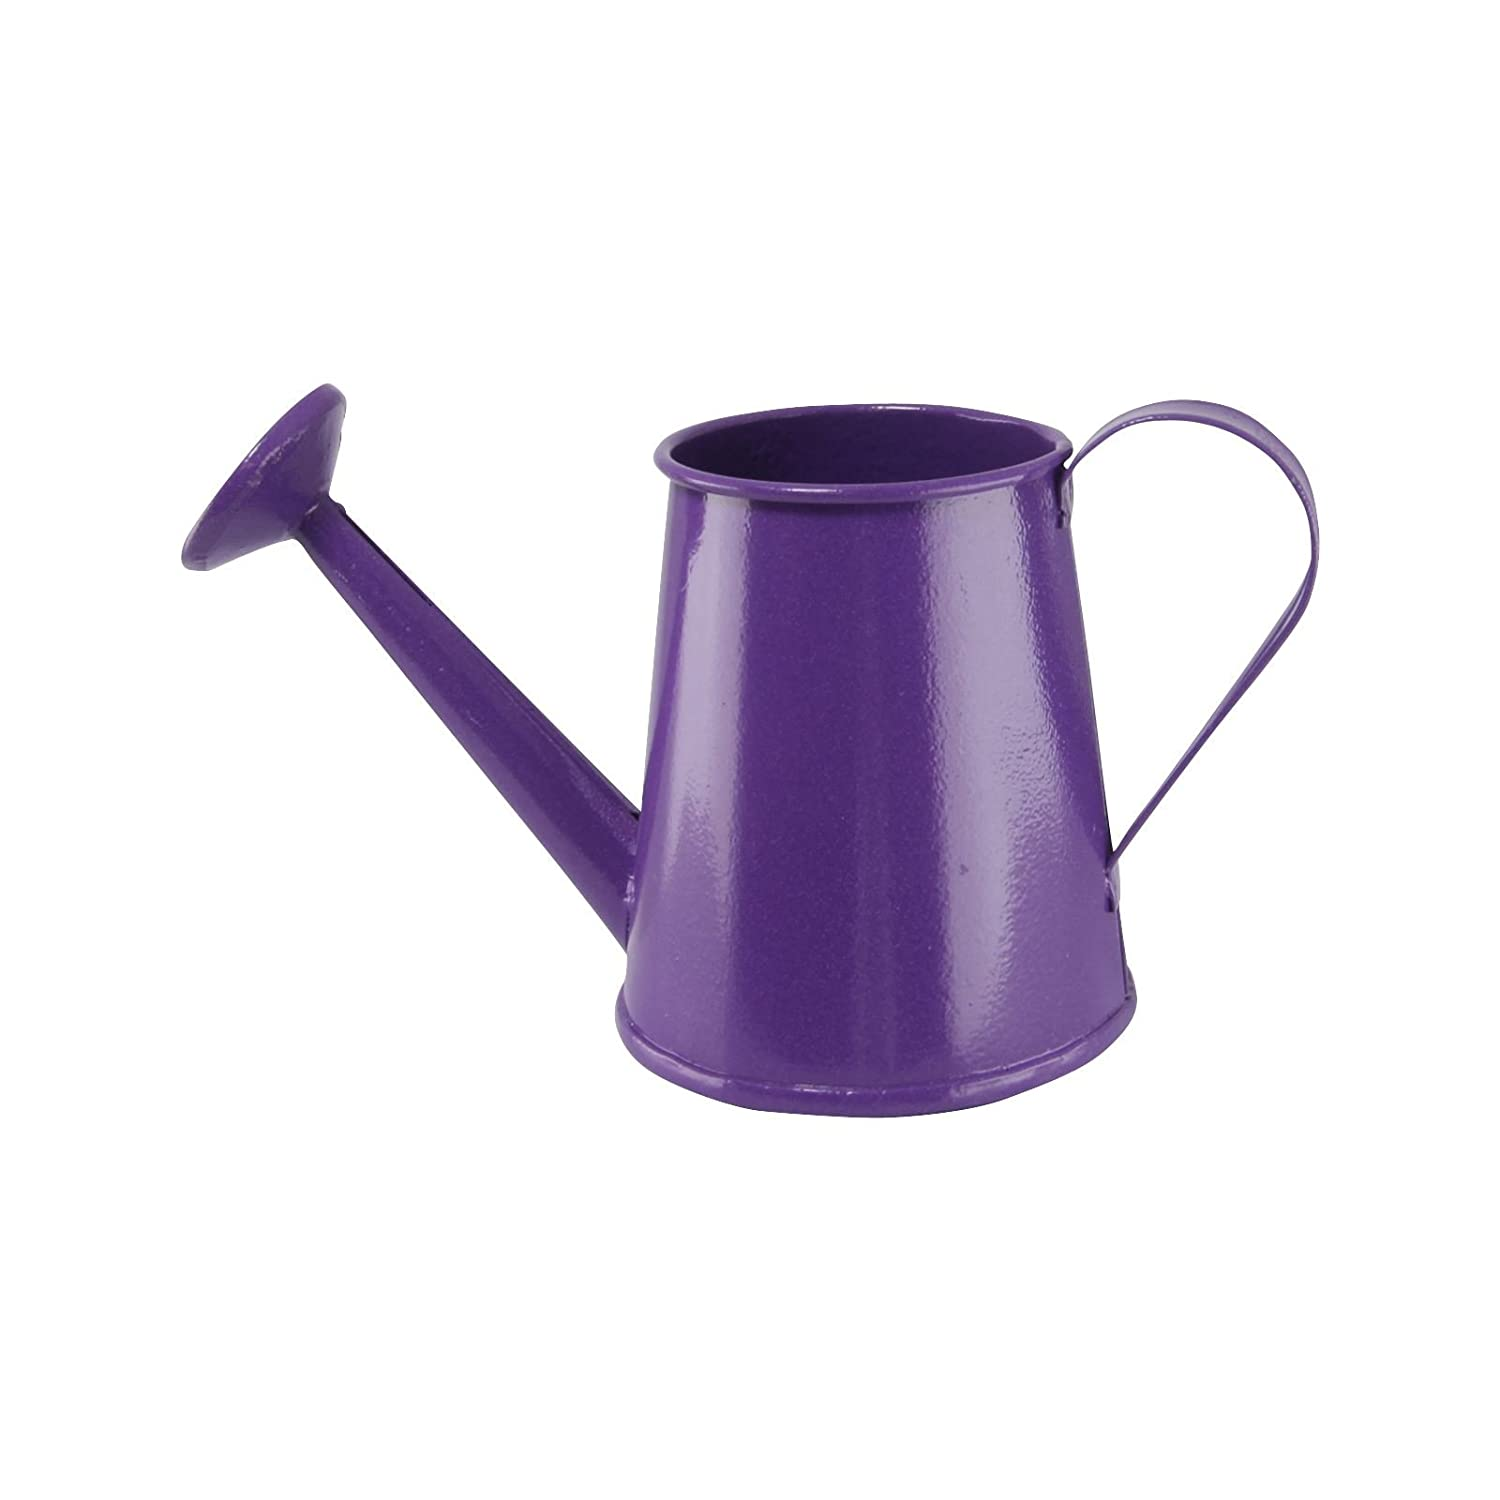 Watering Cans Household Mini Watering Can Small Plant Watering Can Flower Tools Plastic Pot Garden Patio Tallergrafico Com Uy